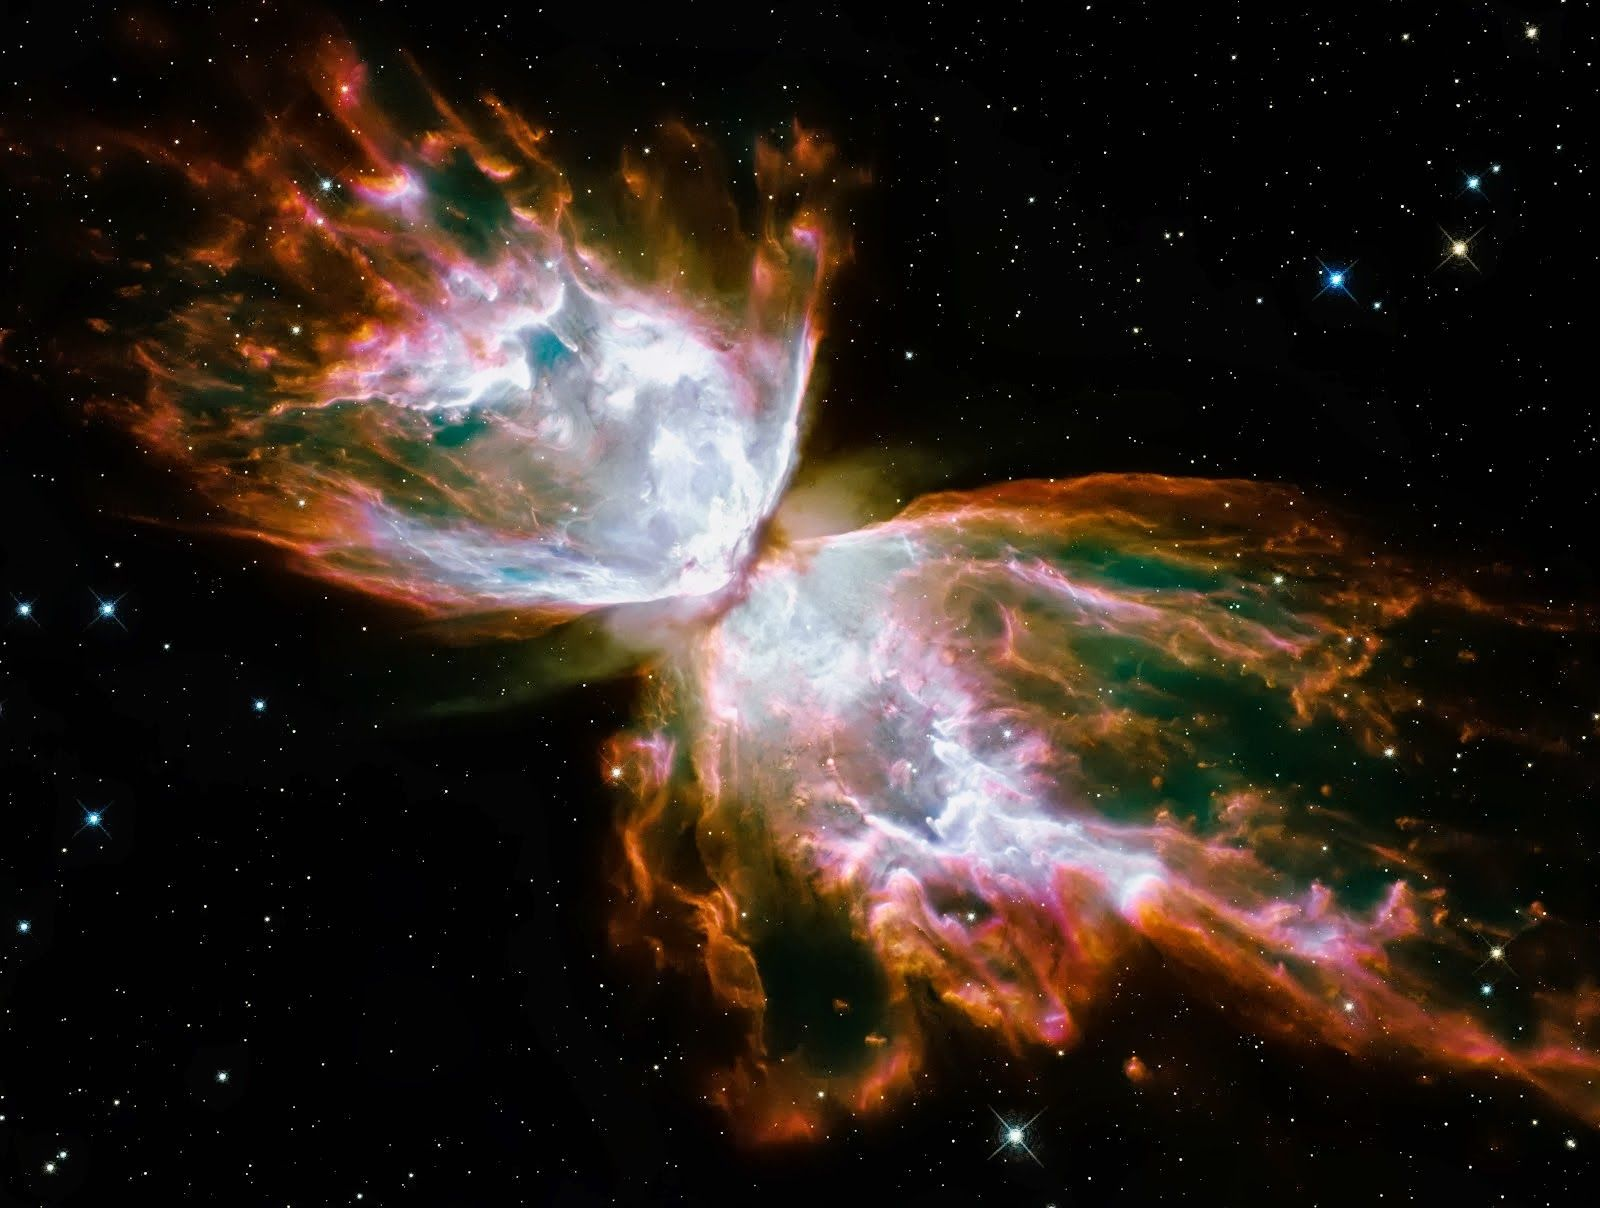 Real hd space wallpapers top free real hd space - Deep space wallpaper hd ...